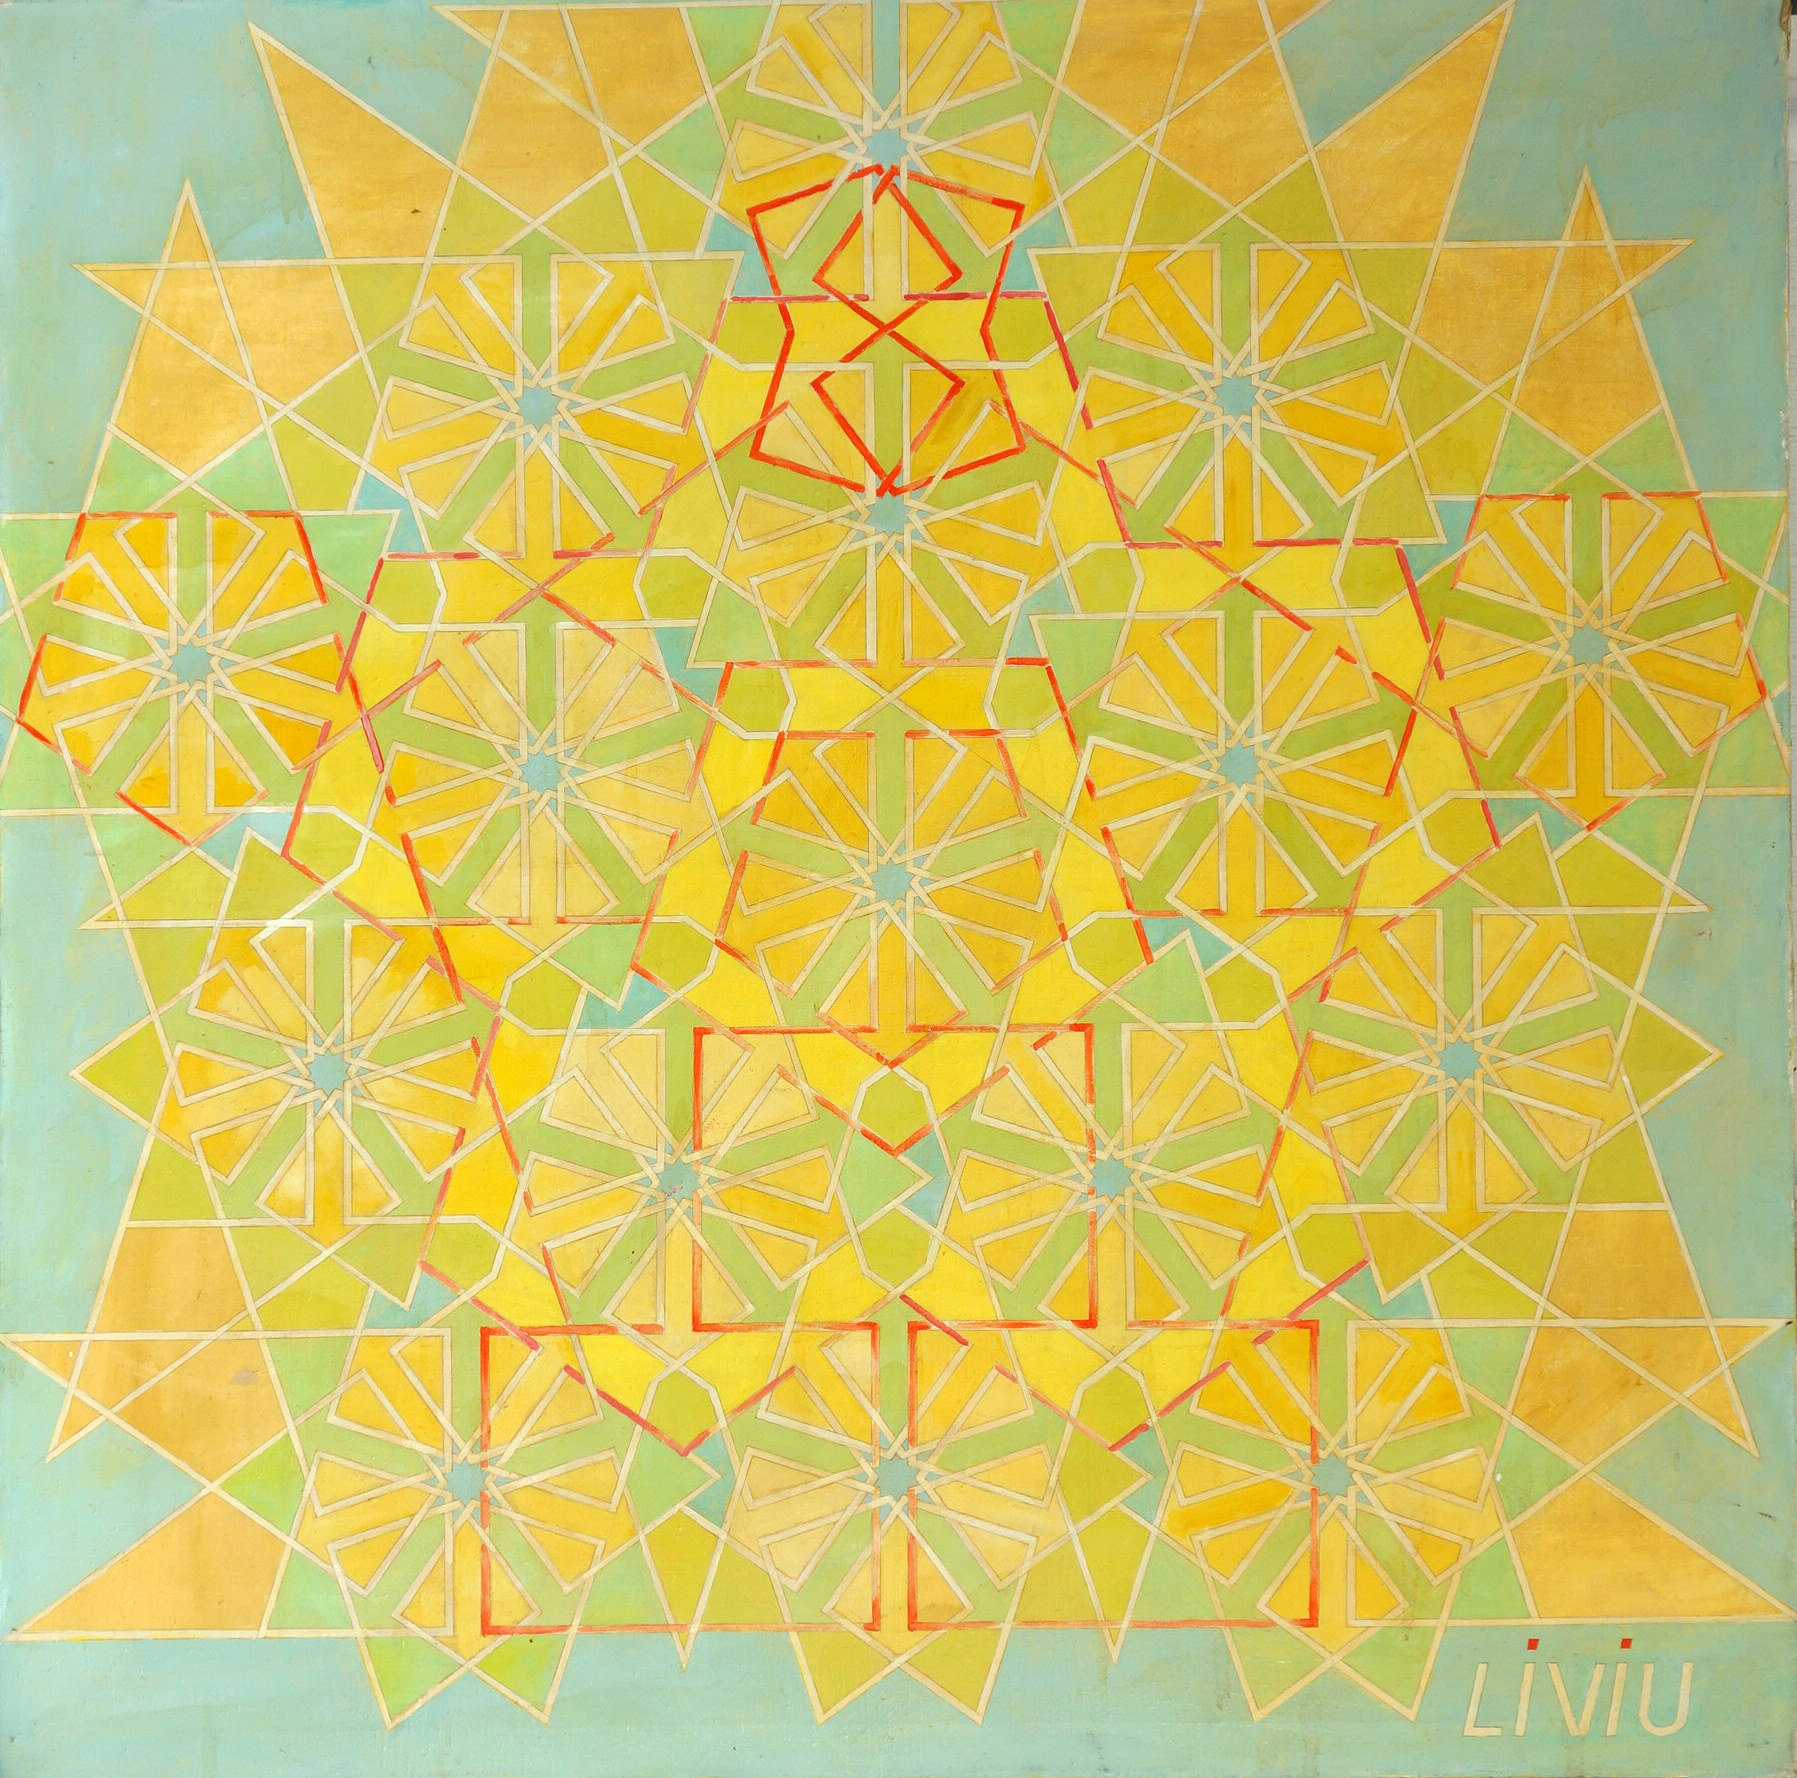 Oils on canvass, 1977. 5 feet by 5 feet.  This is about a circle divided in 5 parts and the patterns that can emerge.